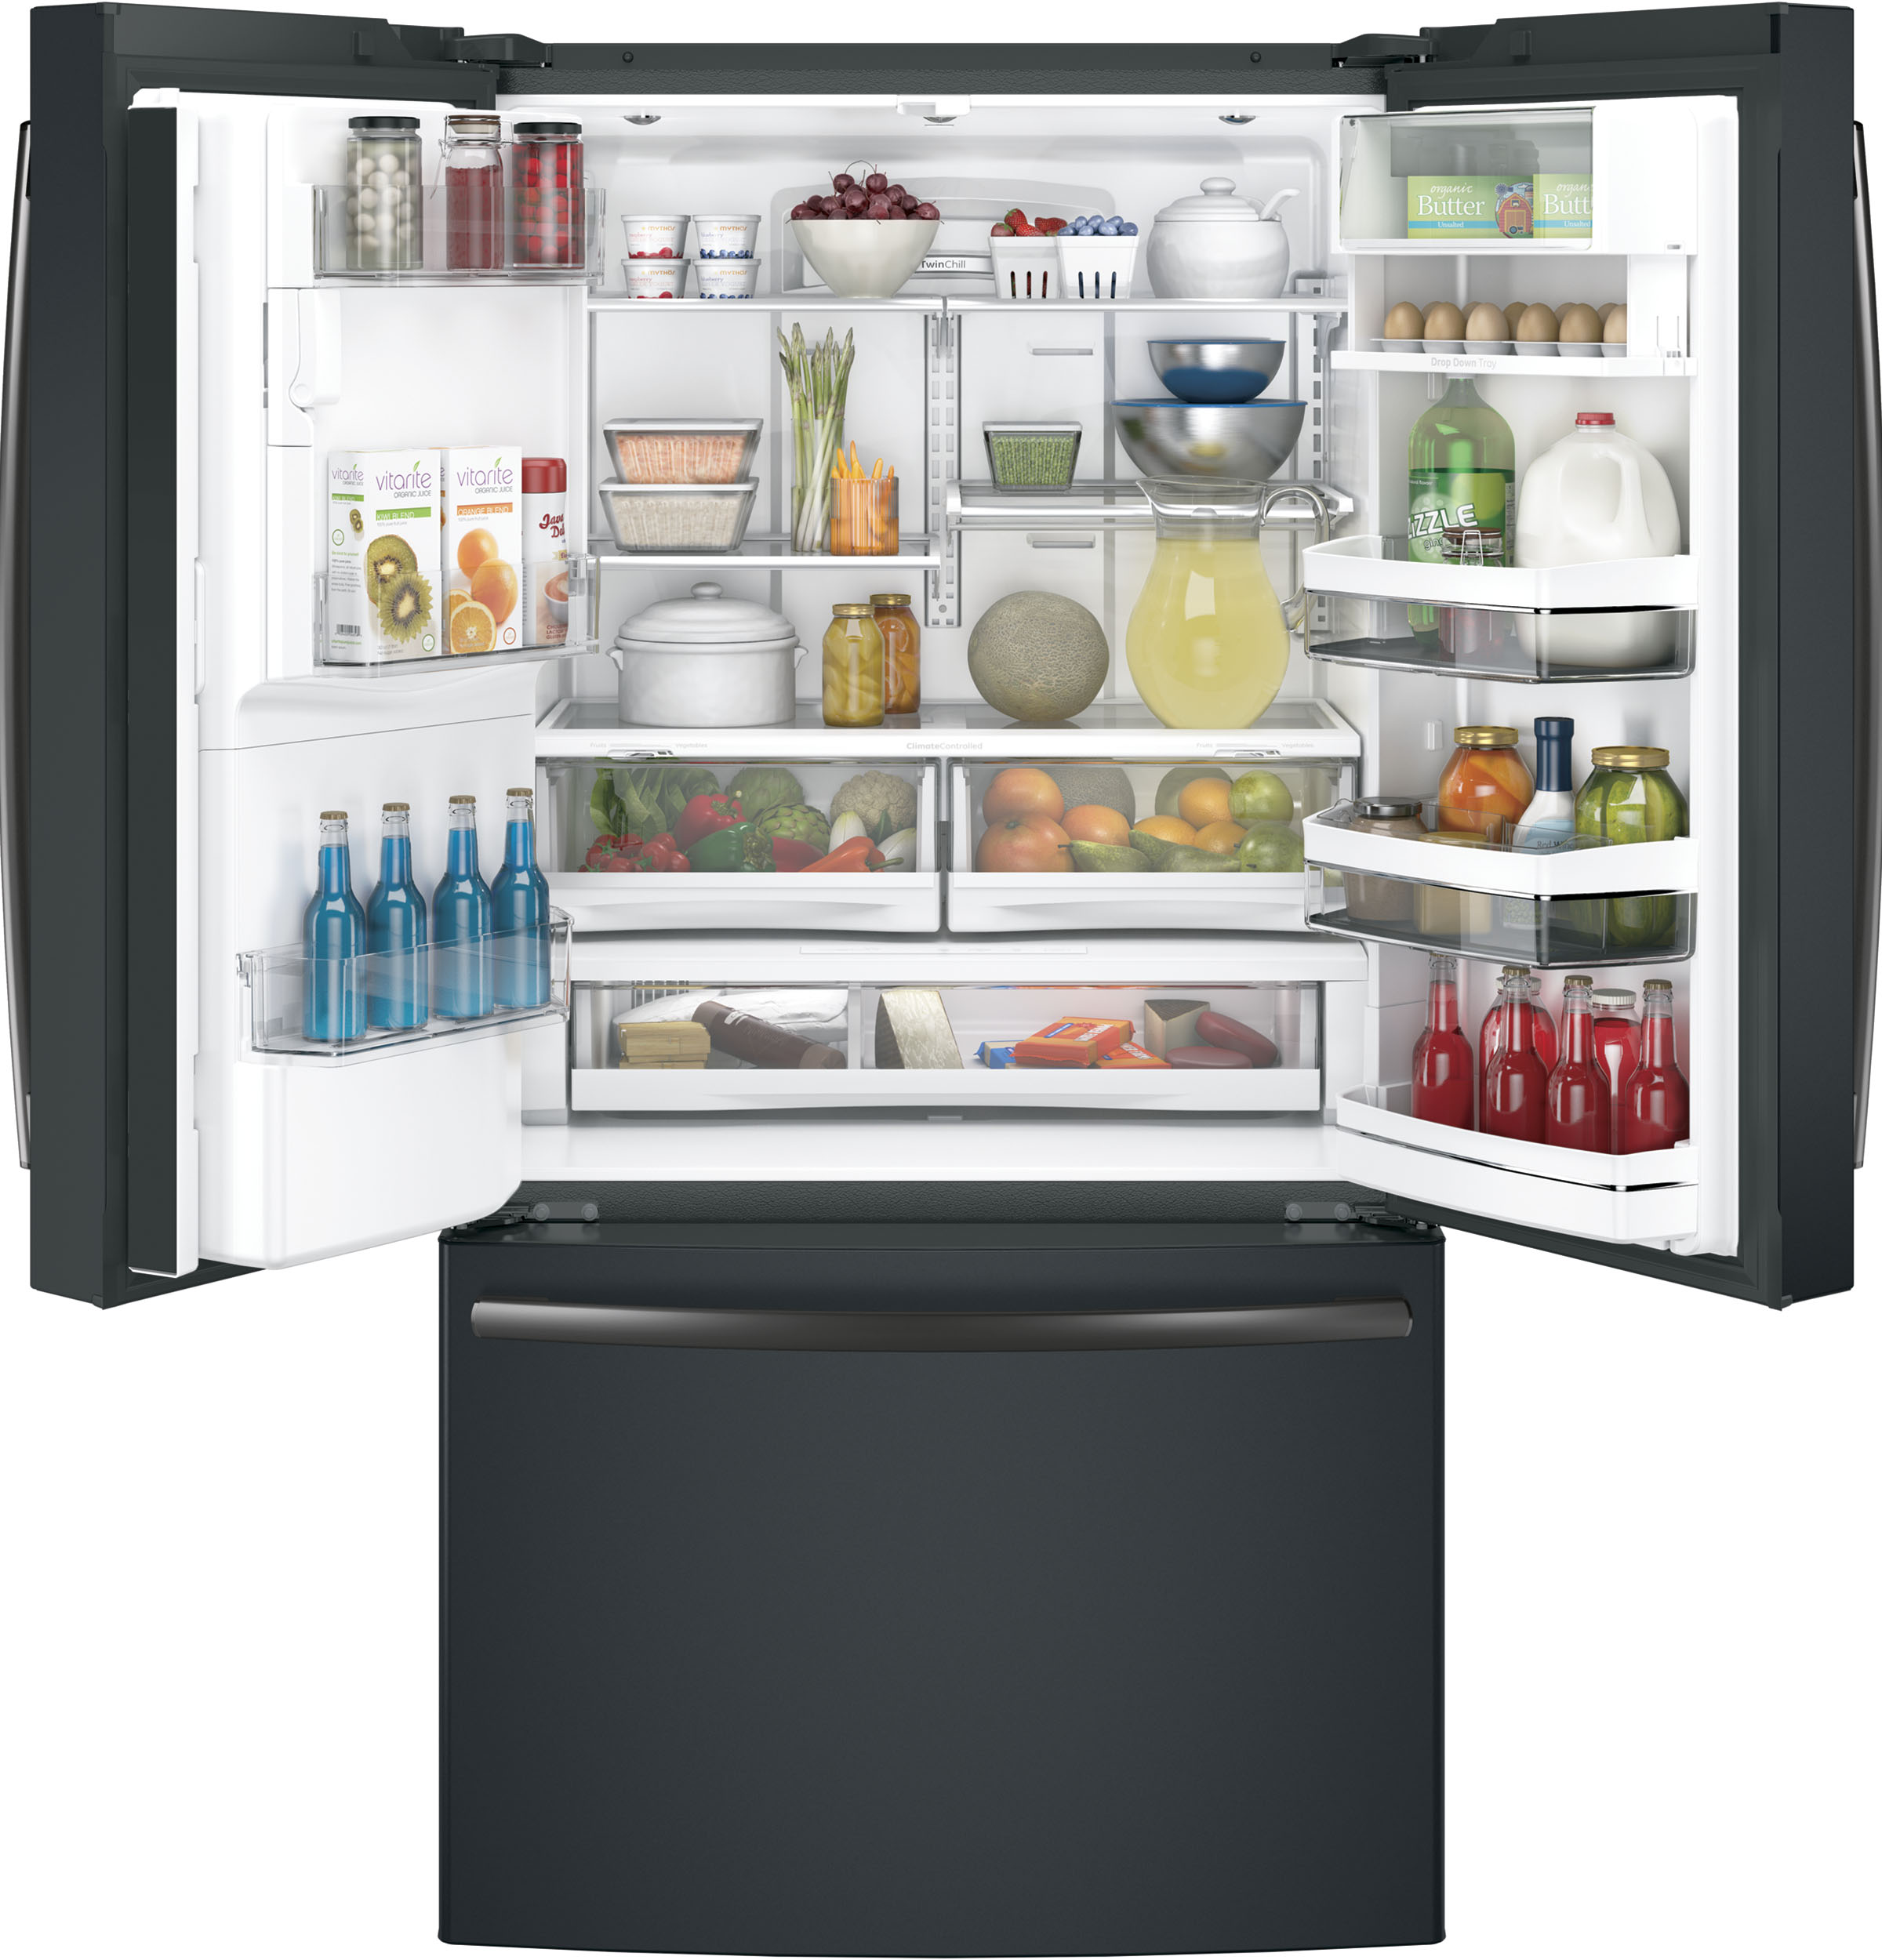 Ge Profile Series Energy Star 222 Cu Ft Counter Depth French Refrigerator Model 25 Schematic Product Image